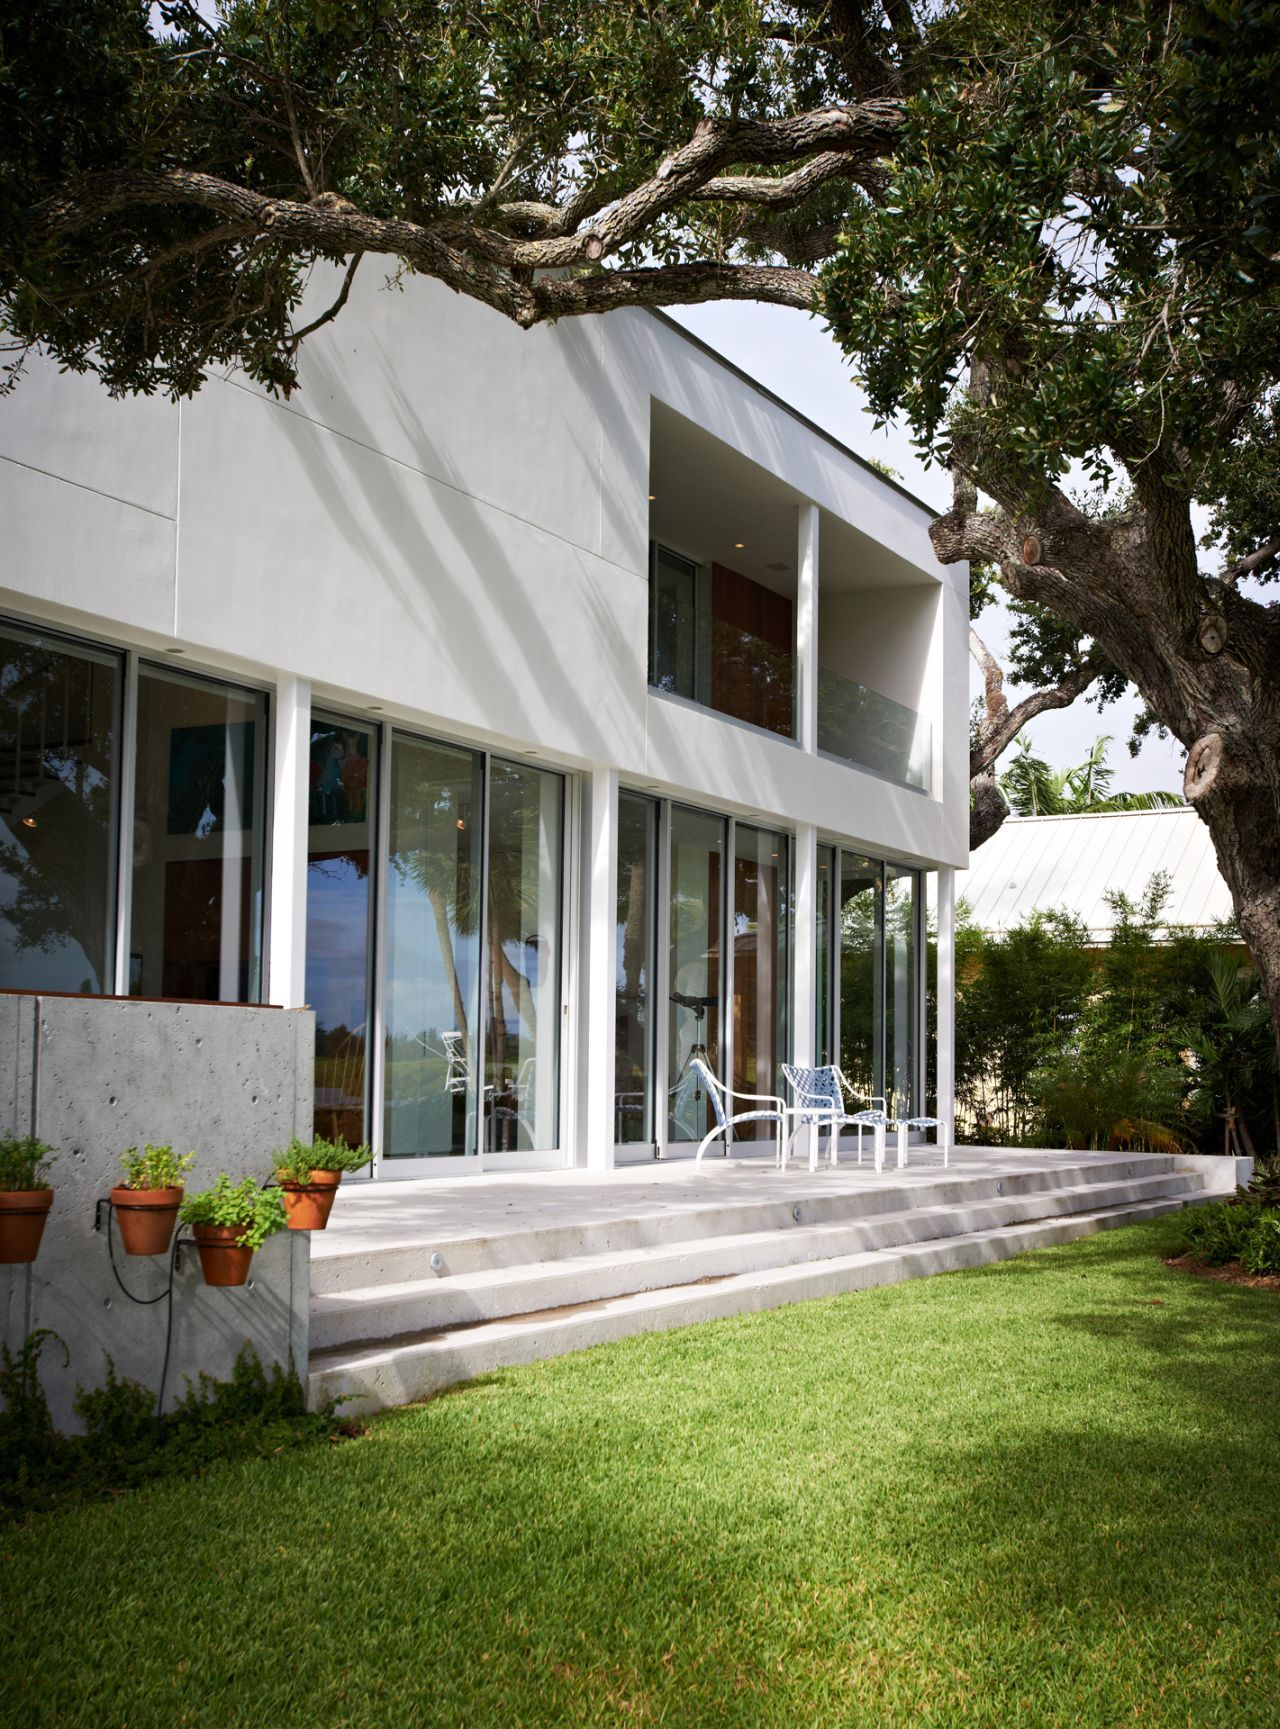 Barrier Island House by Sanders Pace (2)